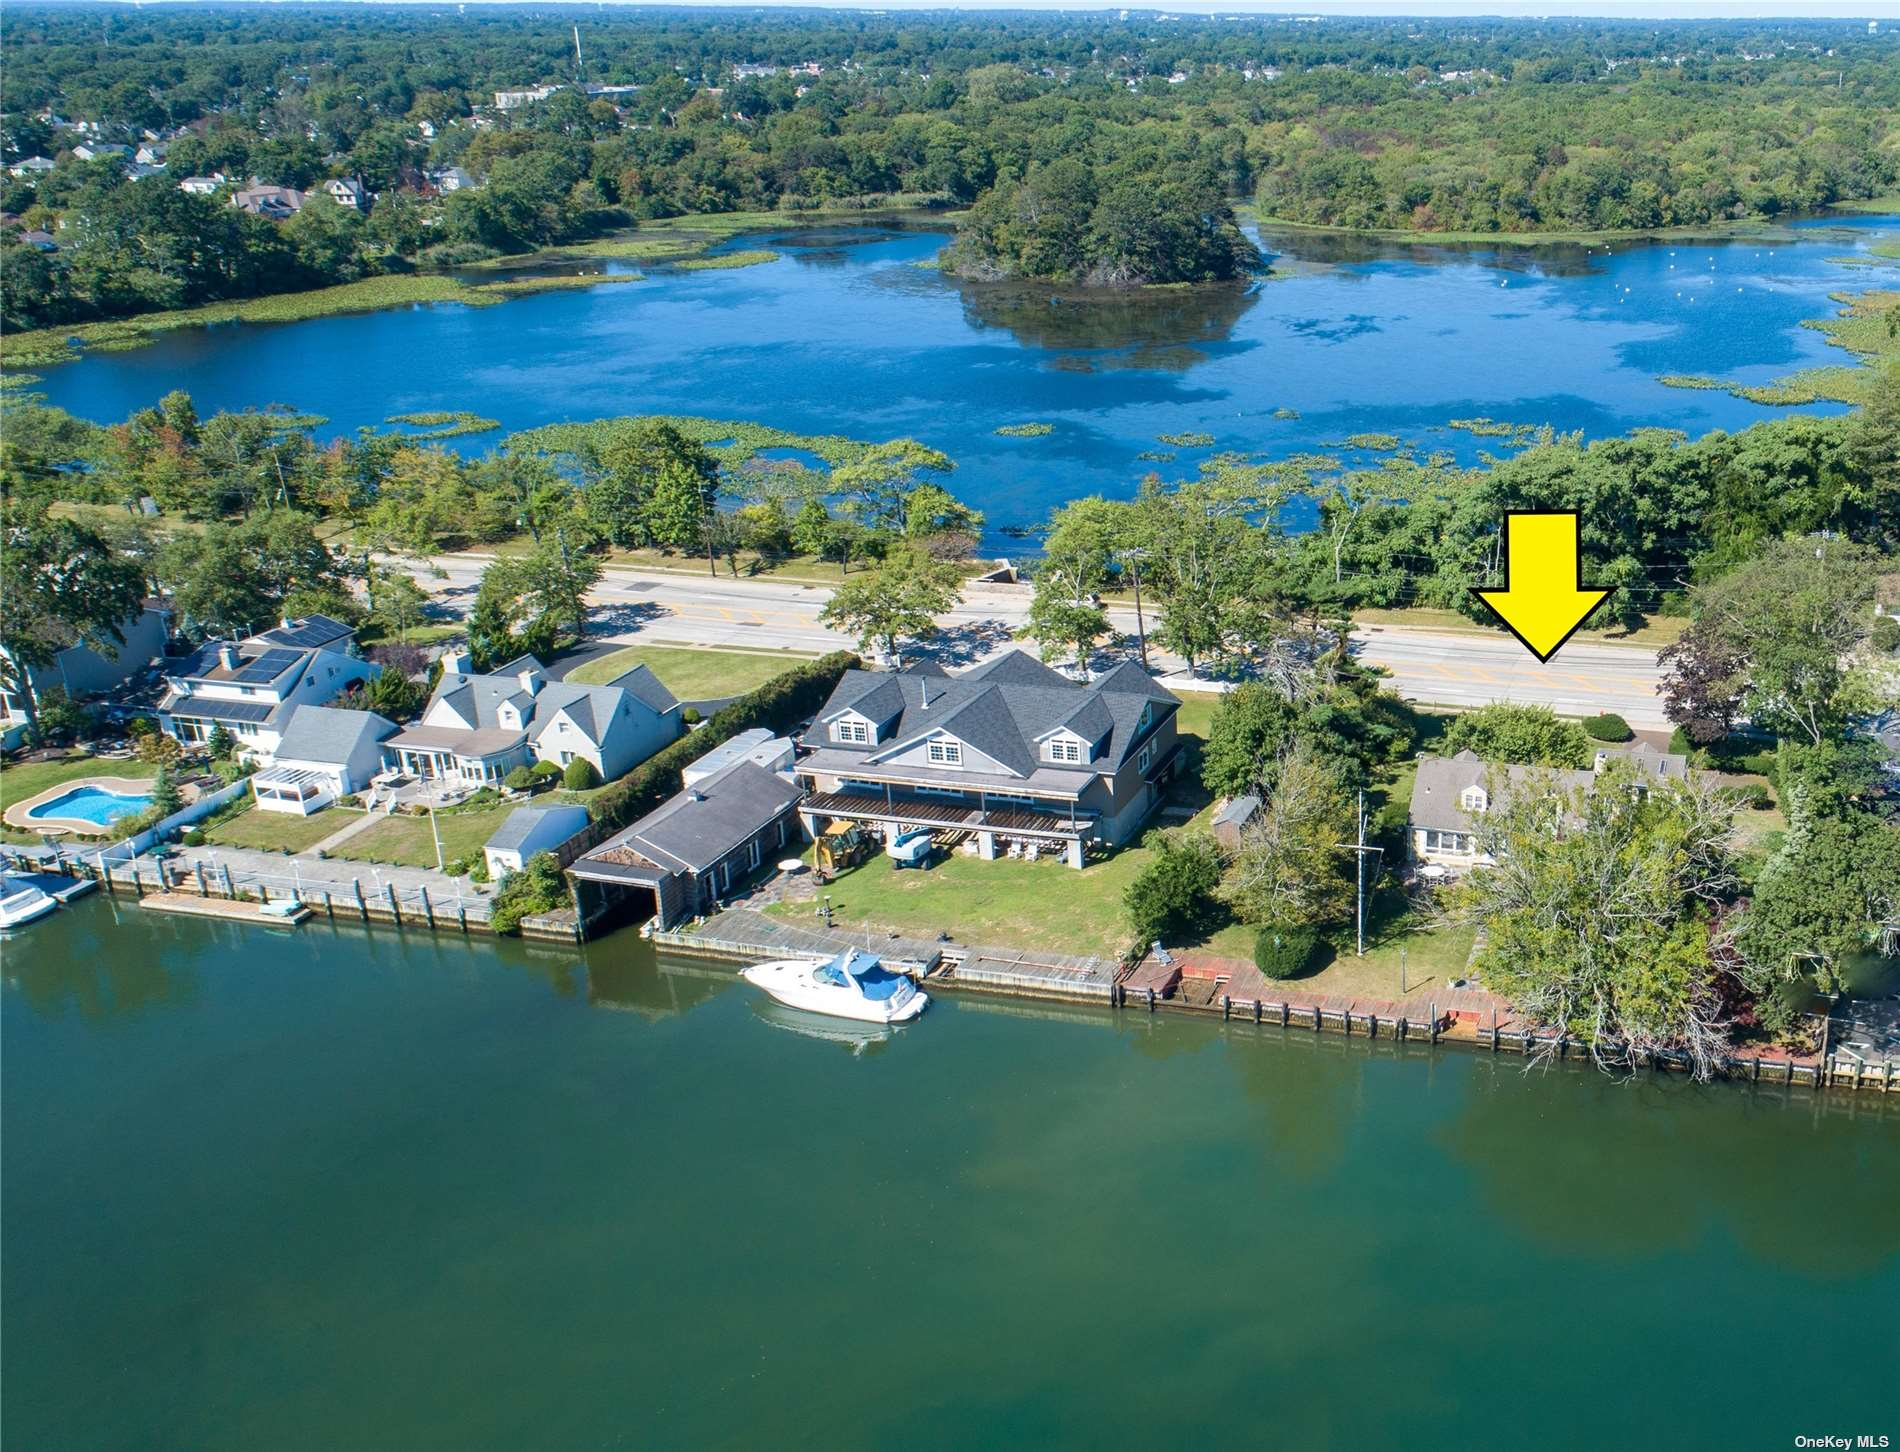 BOATER'S PARADISE With 139' Of Bulkhead on Grand Canal Just Seconds To The Bay!! Great Opportunity To Make This Waterfront Home Your Own.  Situated On .53 Acres In Desirable Biltmore Shores, This Charming Cape Boasts 3 Bedrooms, 3 Full Baths, Hardwood Floors, Formal Living room With Stone Fireplace, Formal Dining Room, Sunroom/Breakfast Room, Sitting Room, Separate Guest Quarters With Balcony, Master Bedroom With French Doors To Roof Deck Overlooking Rolling Lawn To Your Own Private Bulkhead, Central Air Conditioning, Generously Sized Rooms With Walls Of Glass and Panoramic Views of Canal. Low Taxes Only $16,489.......Don't Miss This One!!